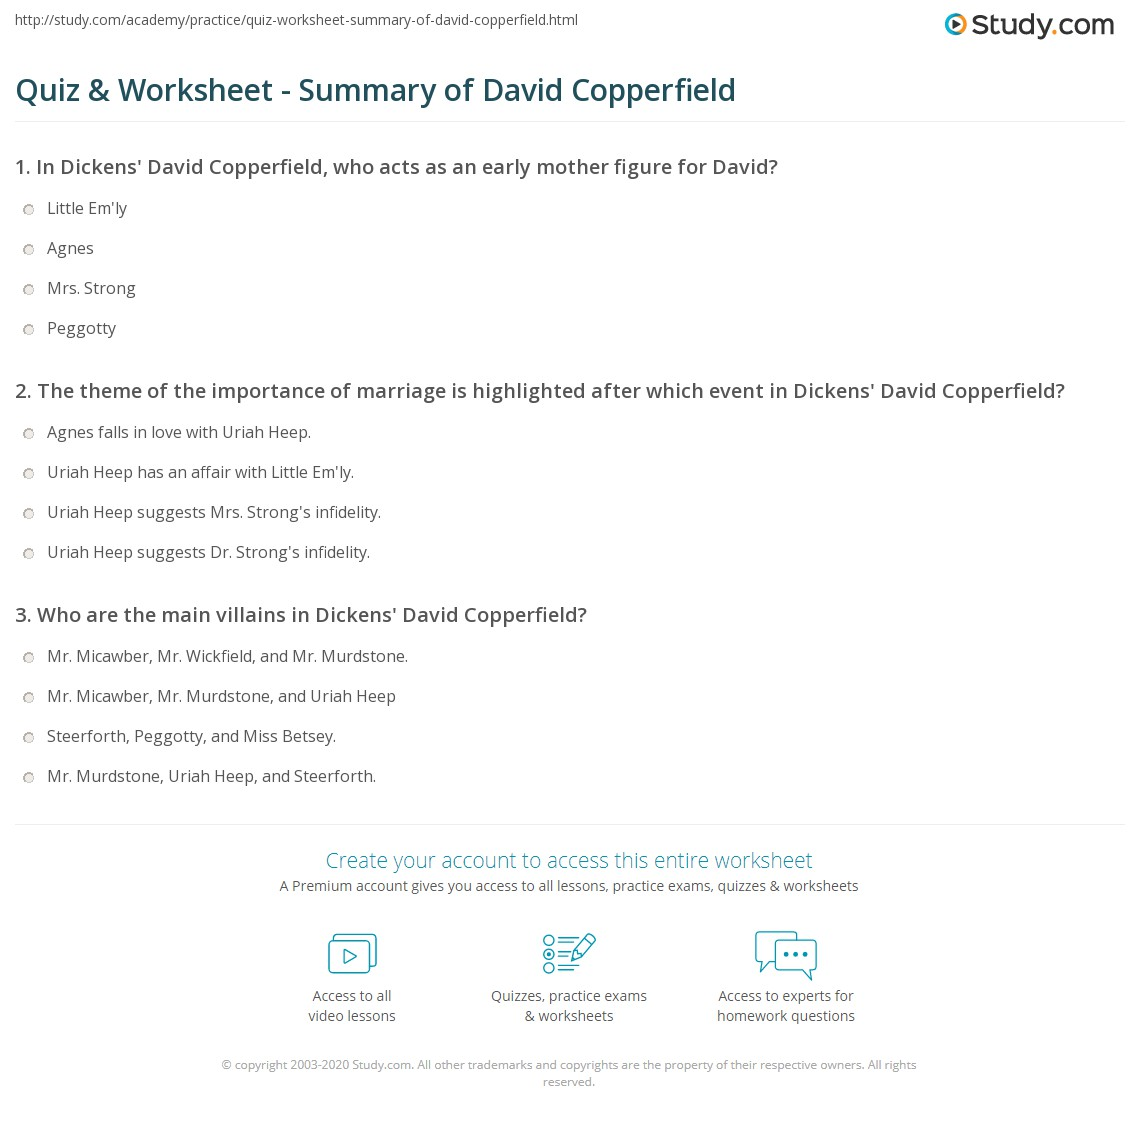 david copperfield novel characters charles dickens david  quiz worksheet summary of david copperfield com print david copperfield dickens bildungsr worksheet